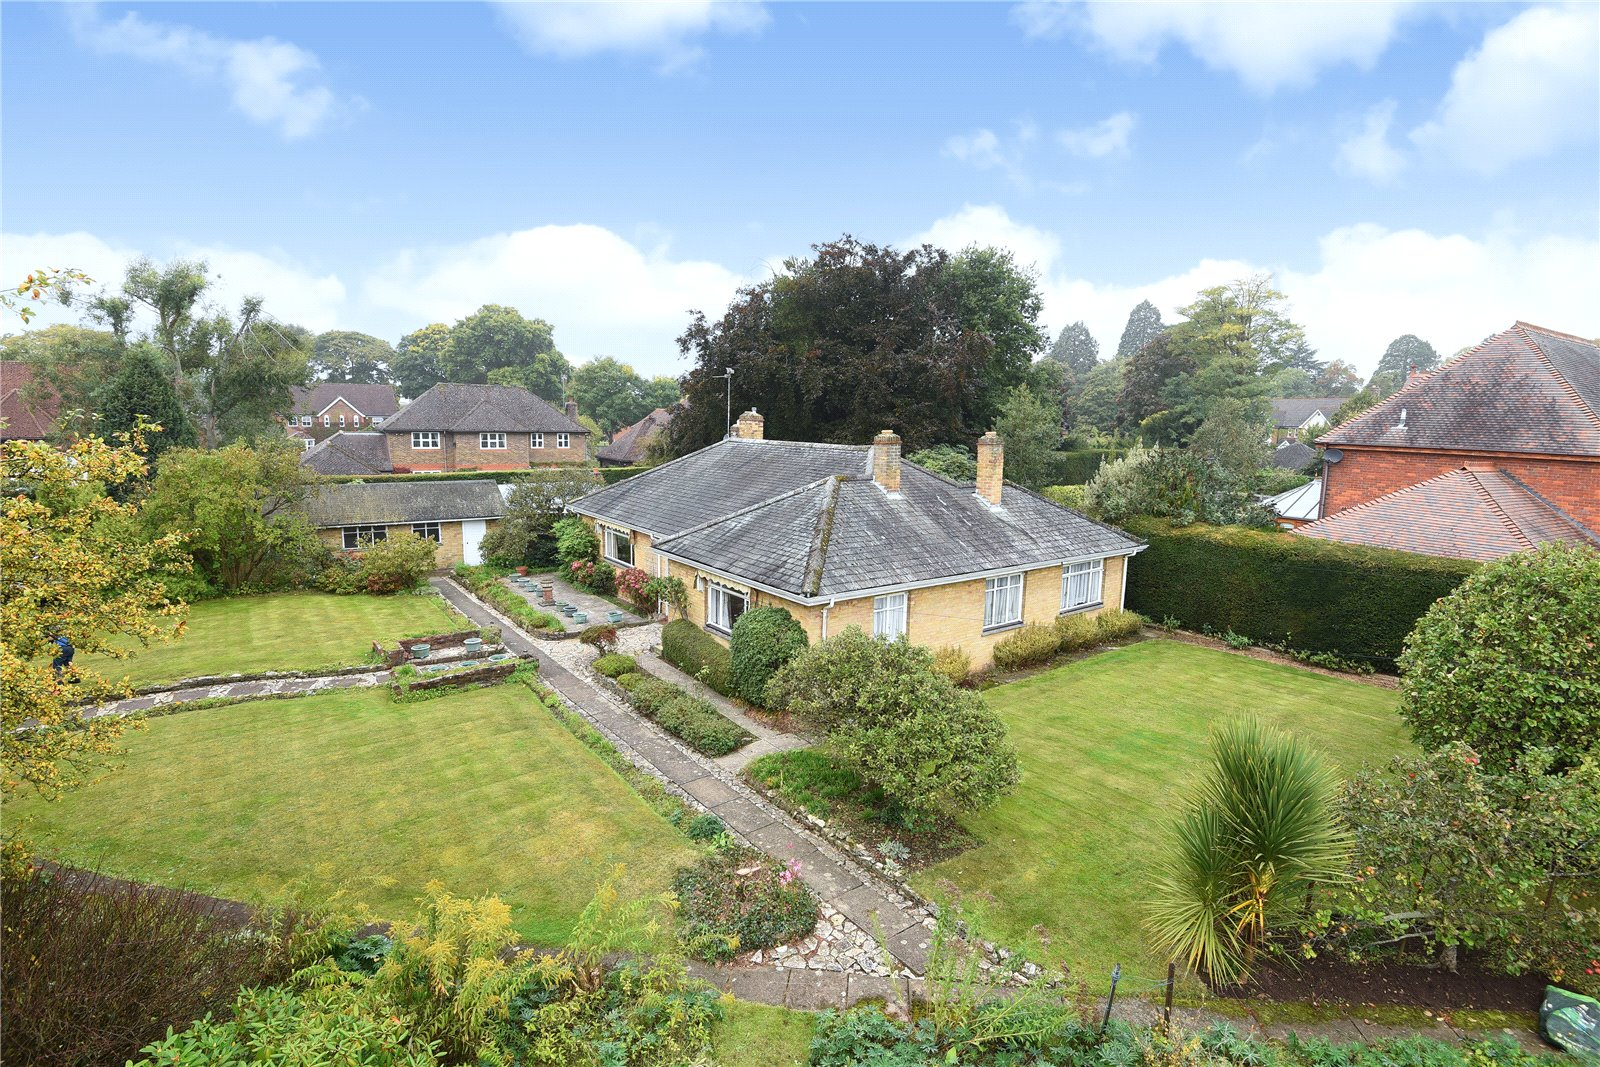 3 Bedrooms Detached Bungalow for sale in Gipsy Lane, Wokingham, Berkshire, RG40